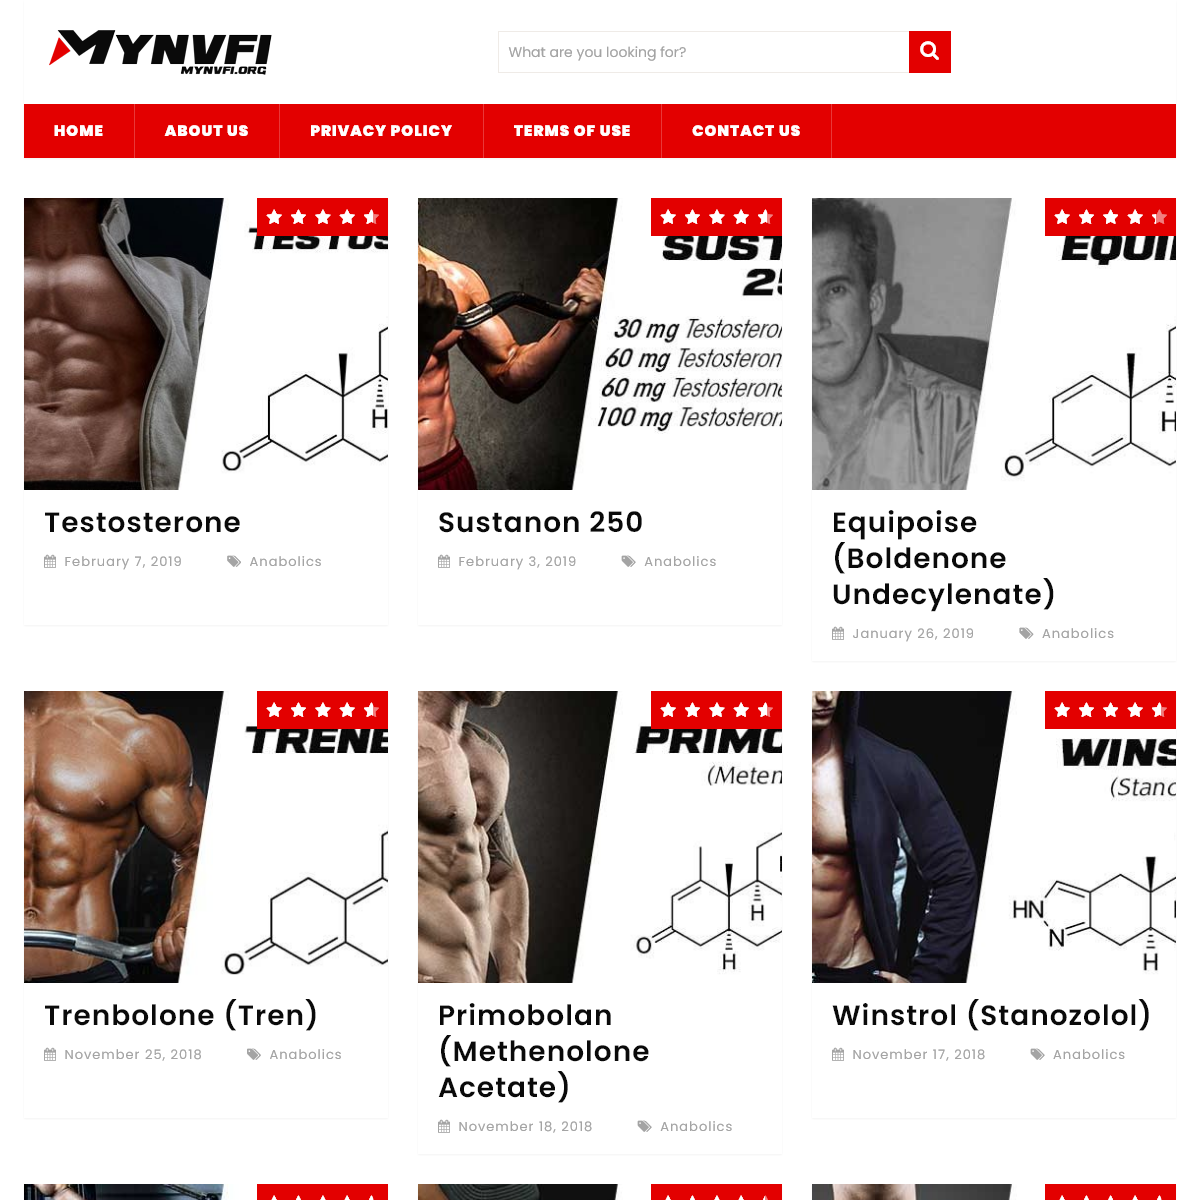 MYNVFI.org - All About SARMS